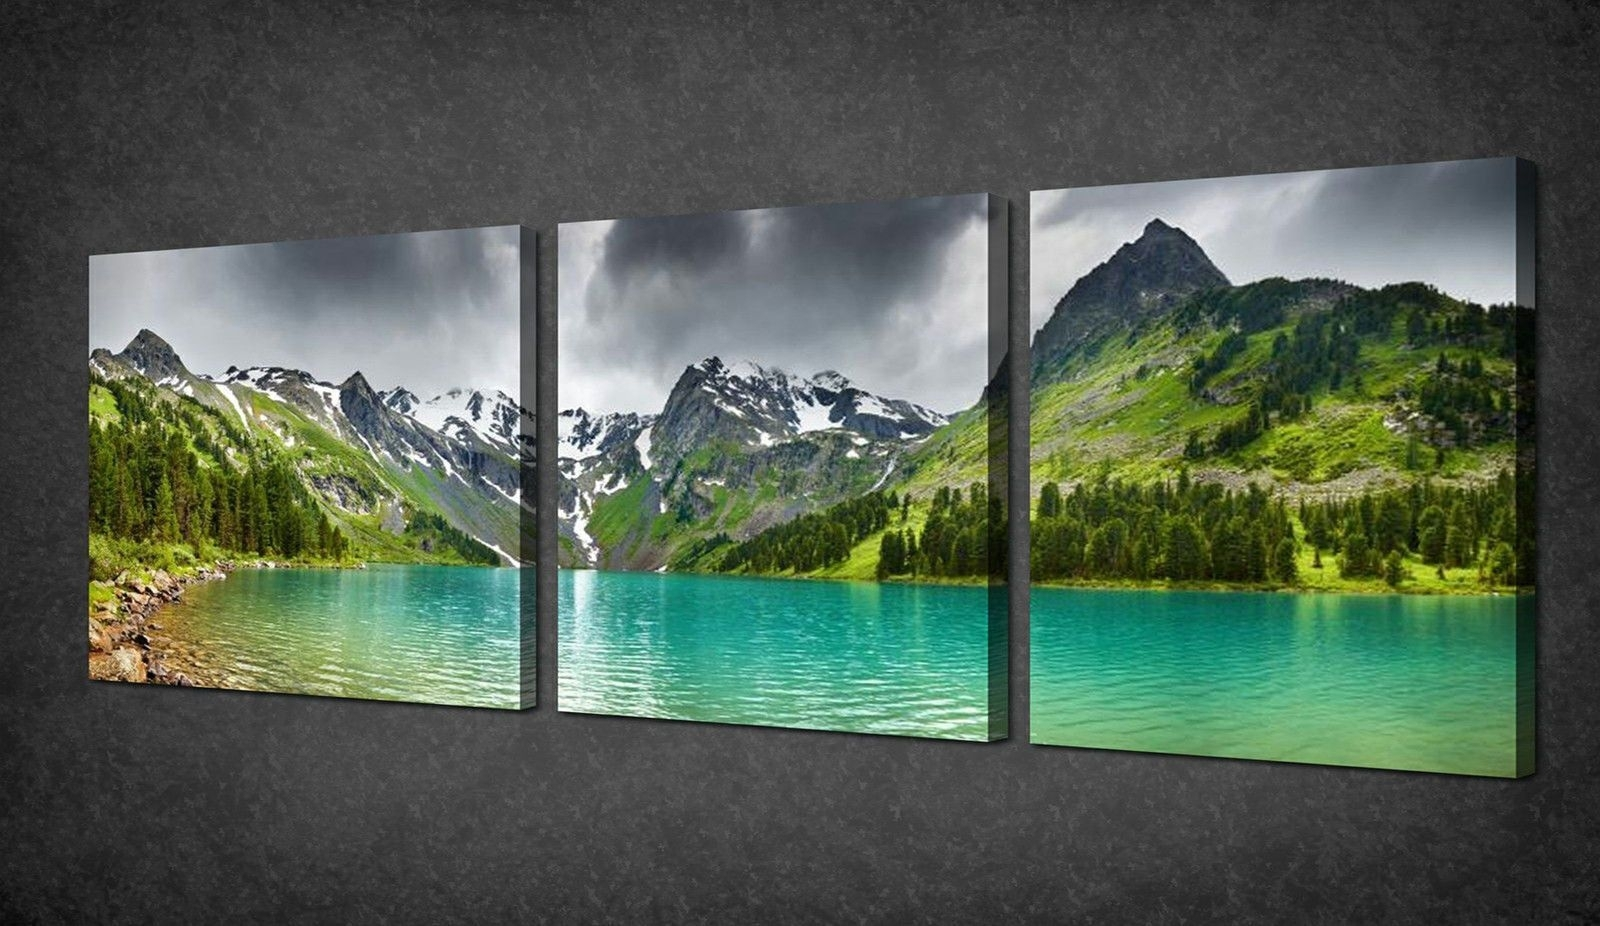 Compact Draw Panoramic Canvas Wall Art Eye Most Important Feel Regarding Recent Panoramic Wall Art (View 5 of 15)